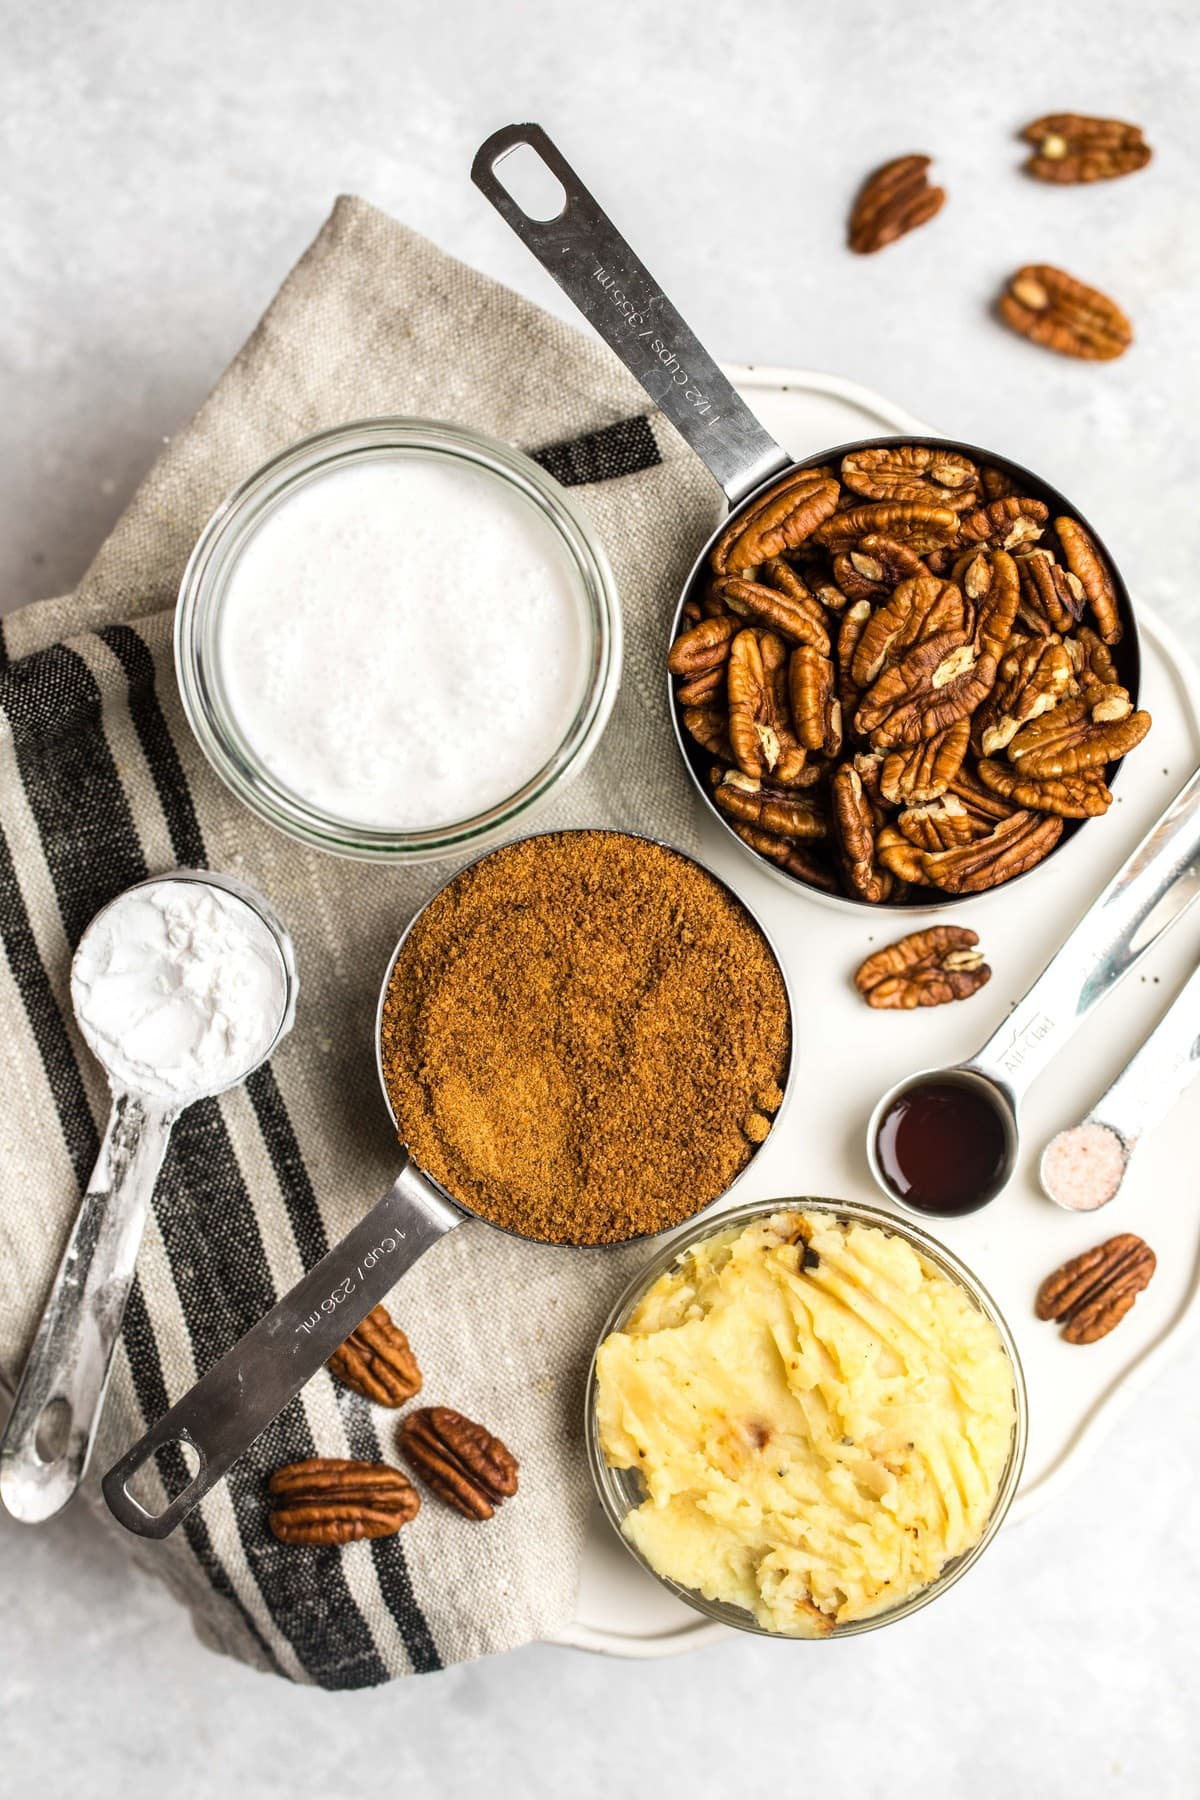 ingredients for pecan pie on marble cutting board